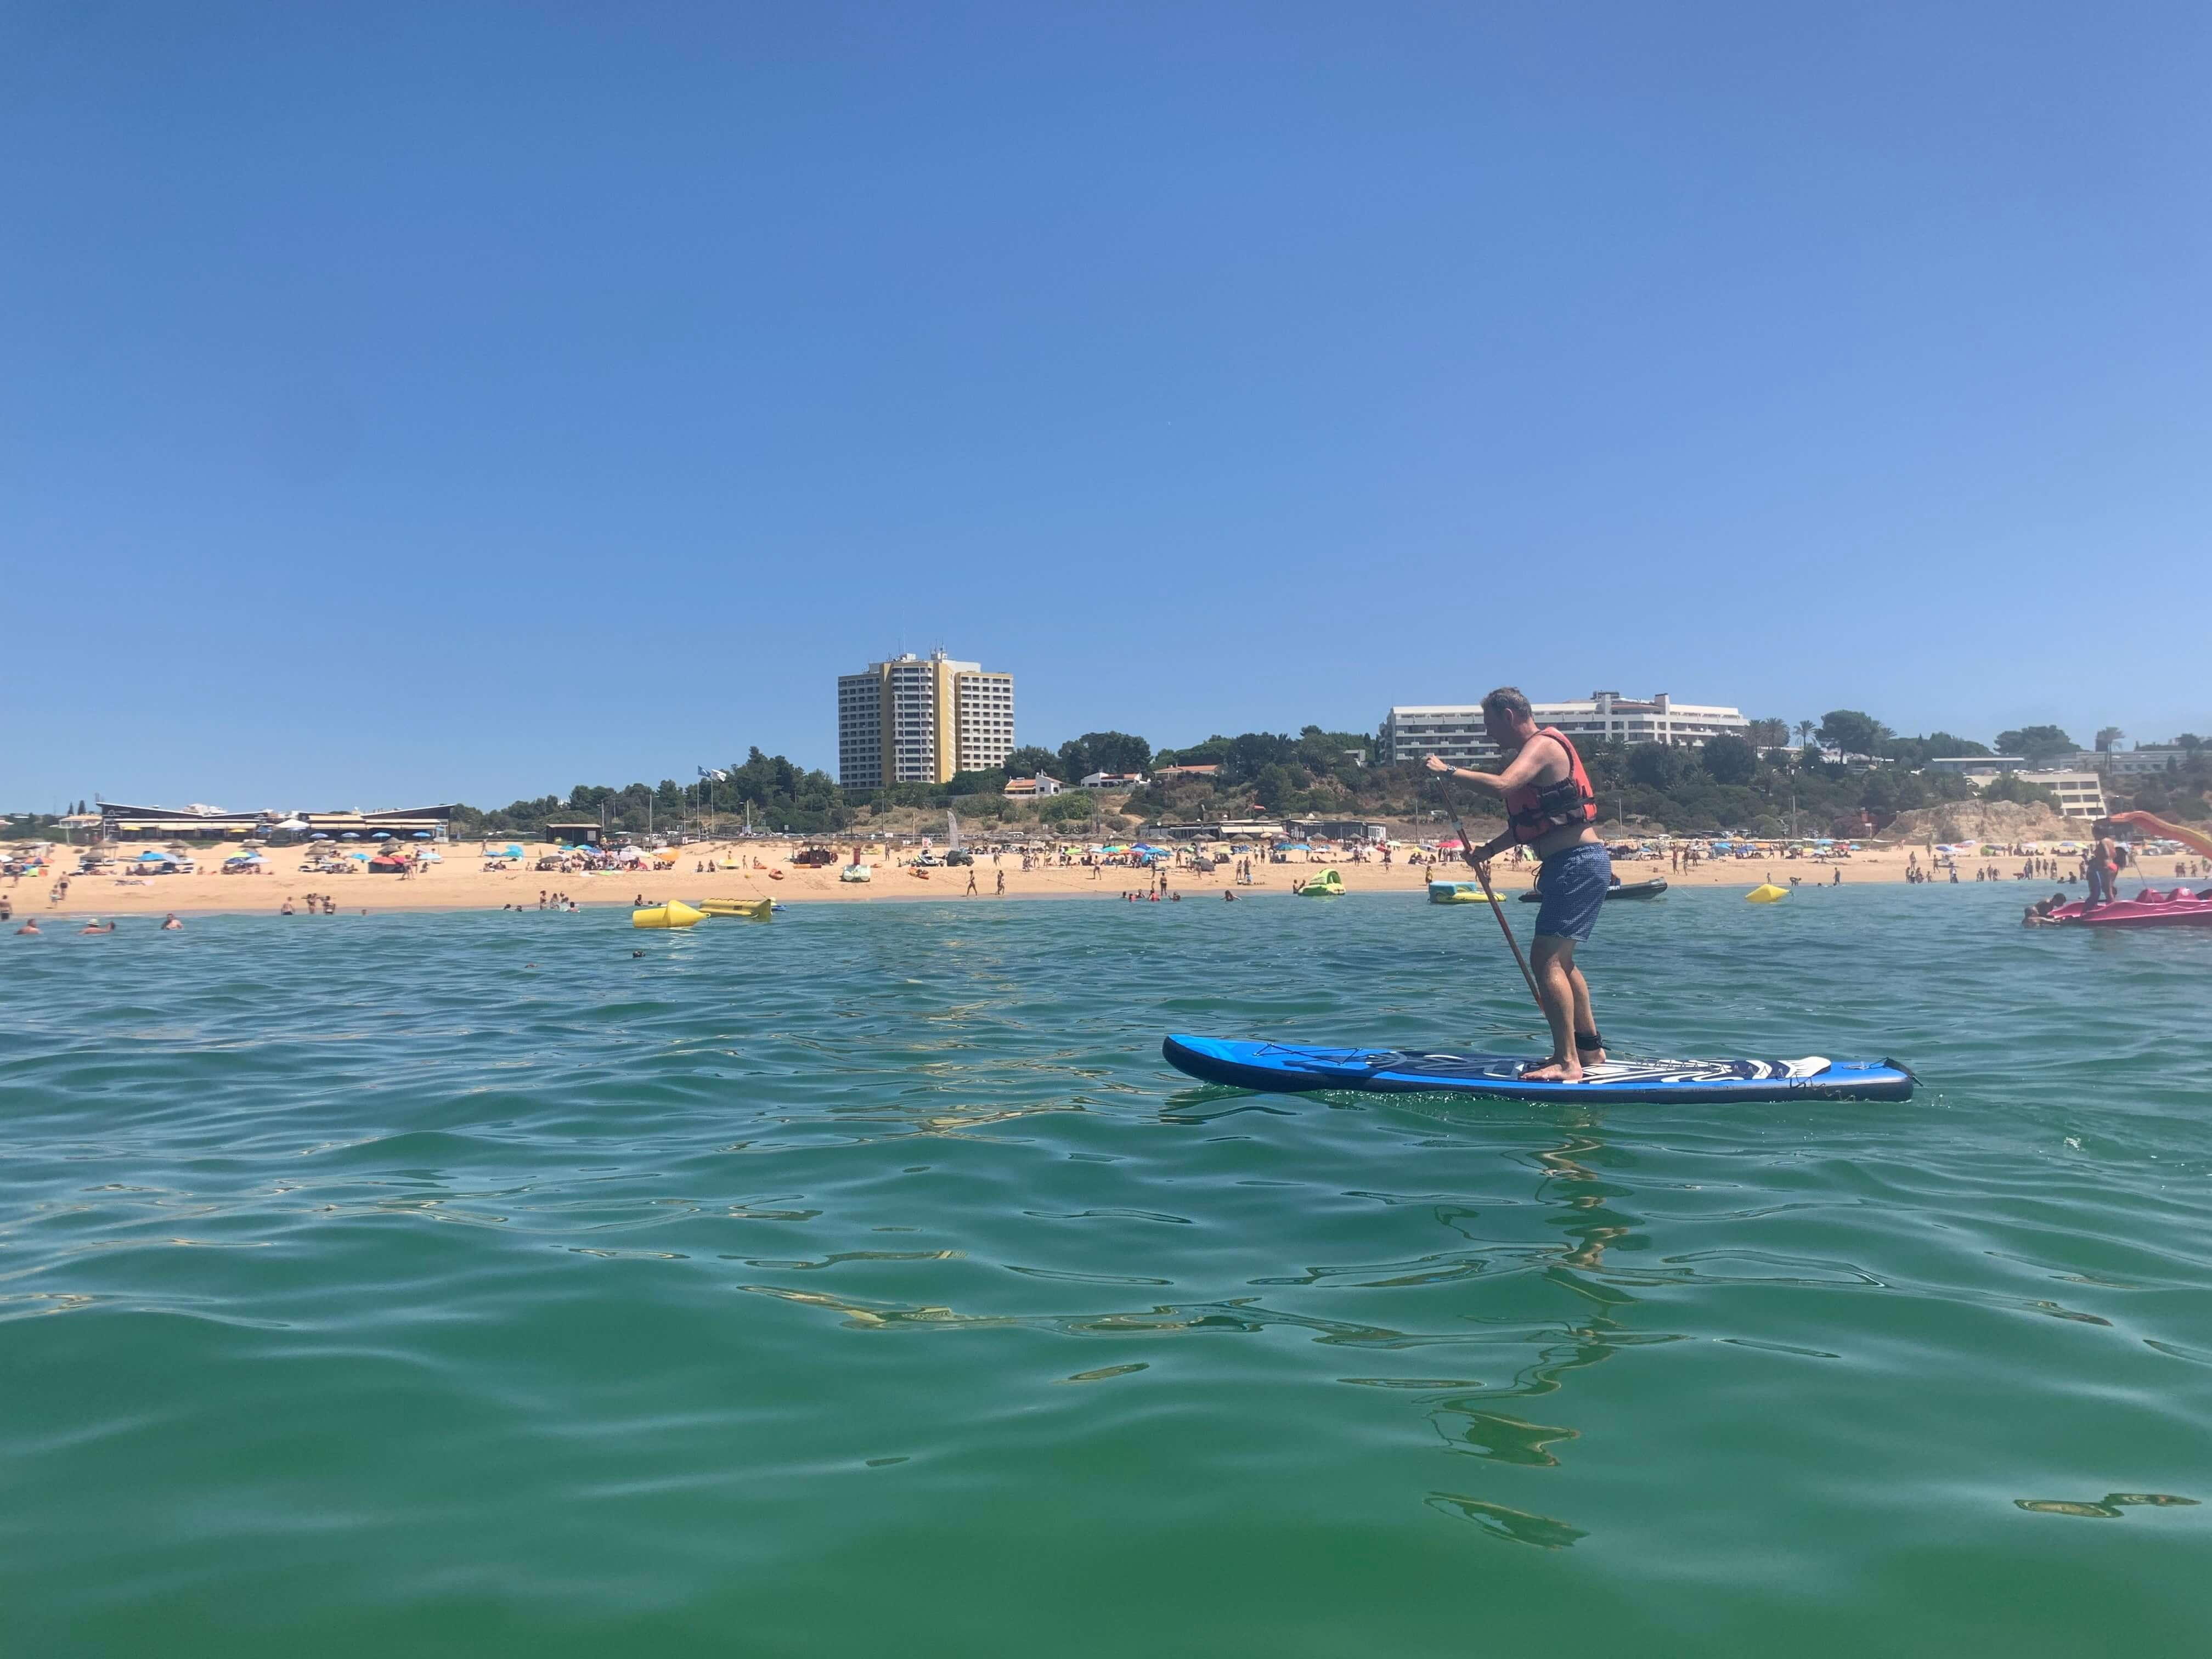 Niel paddleboarding along the sunny shores of the Algarve.